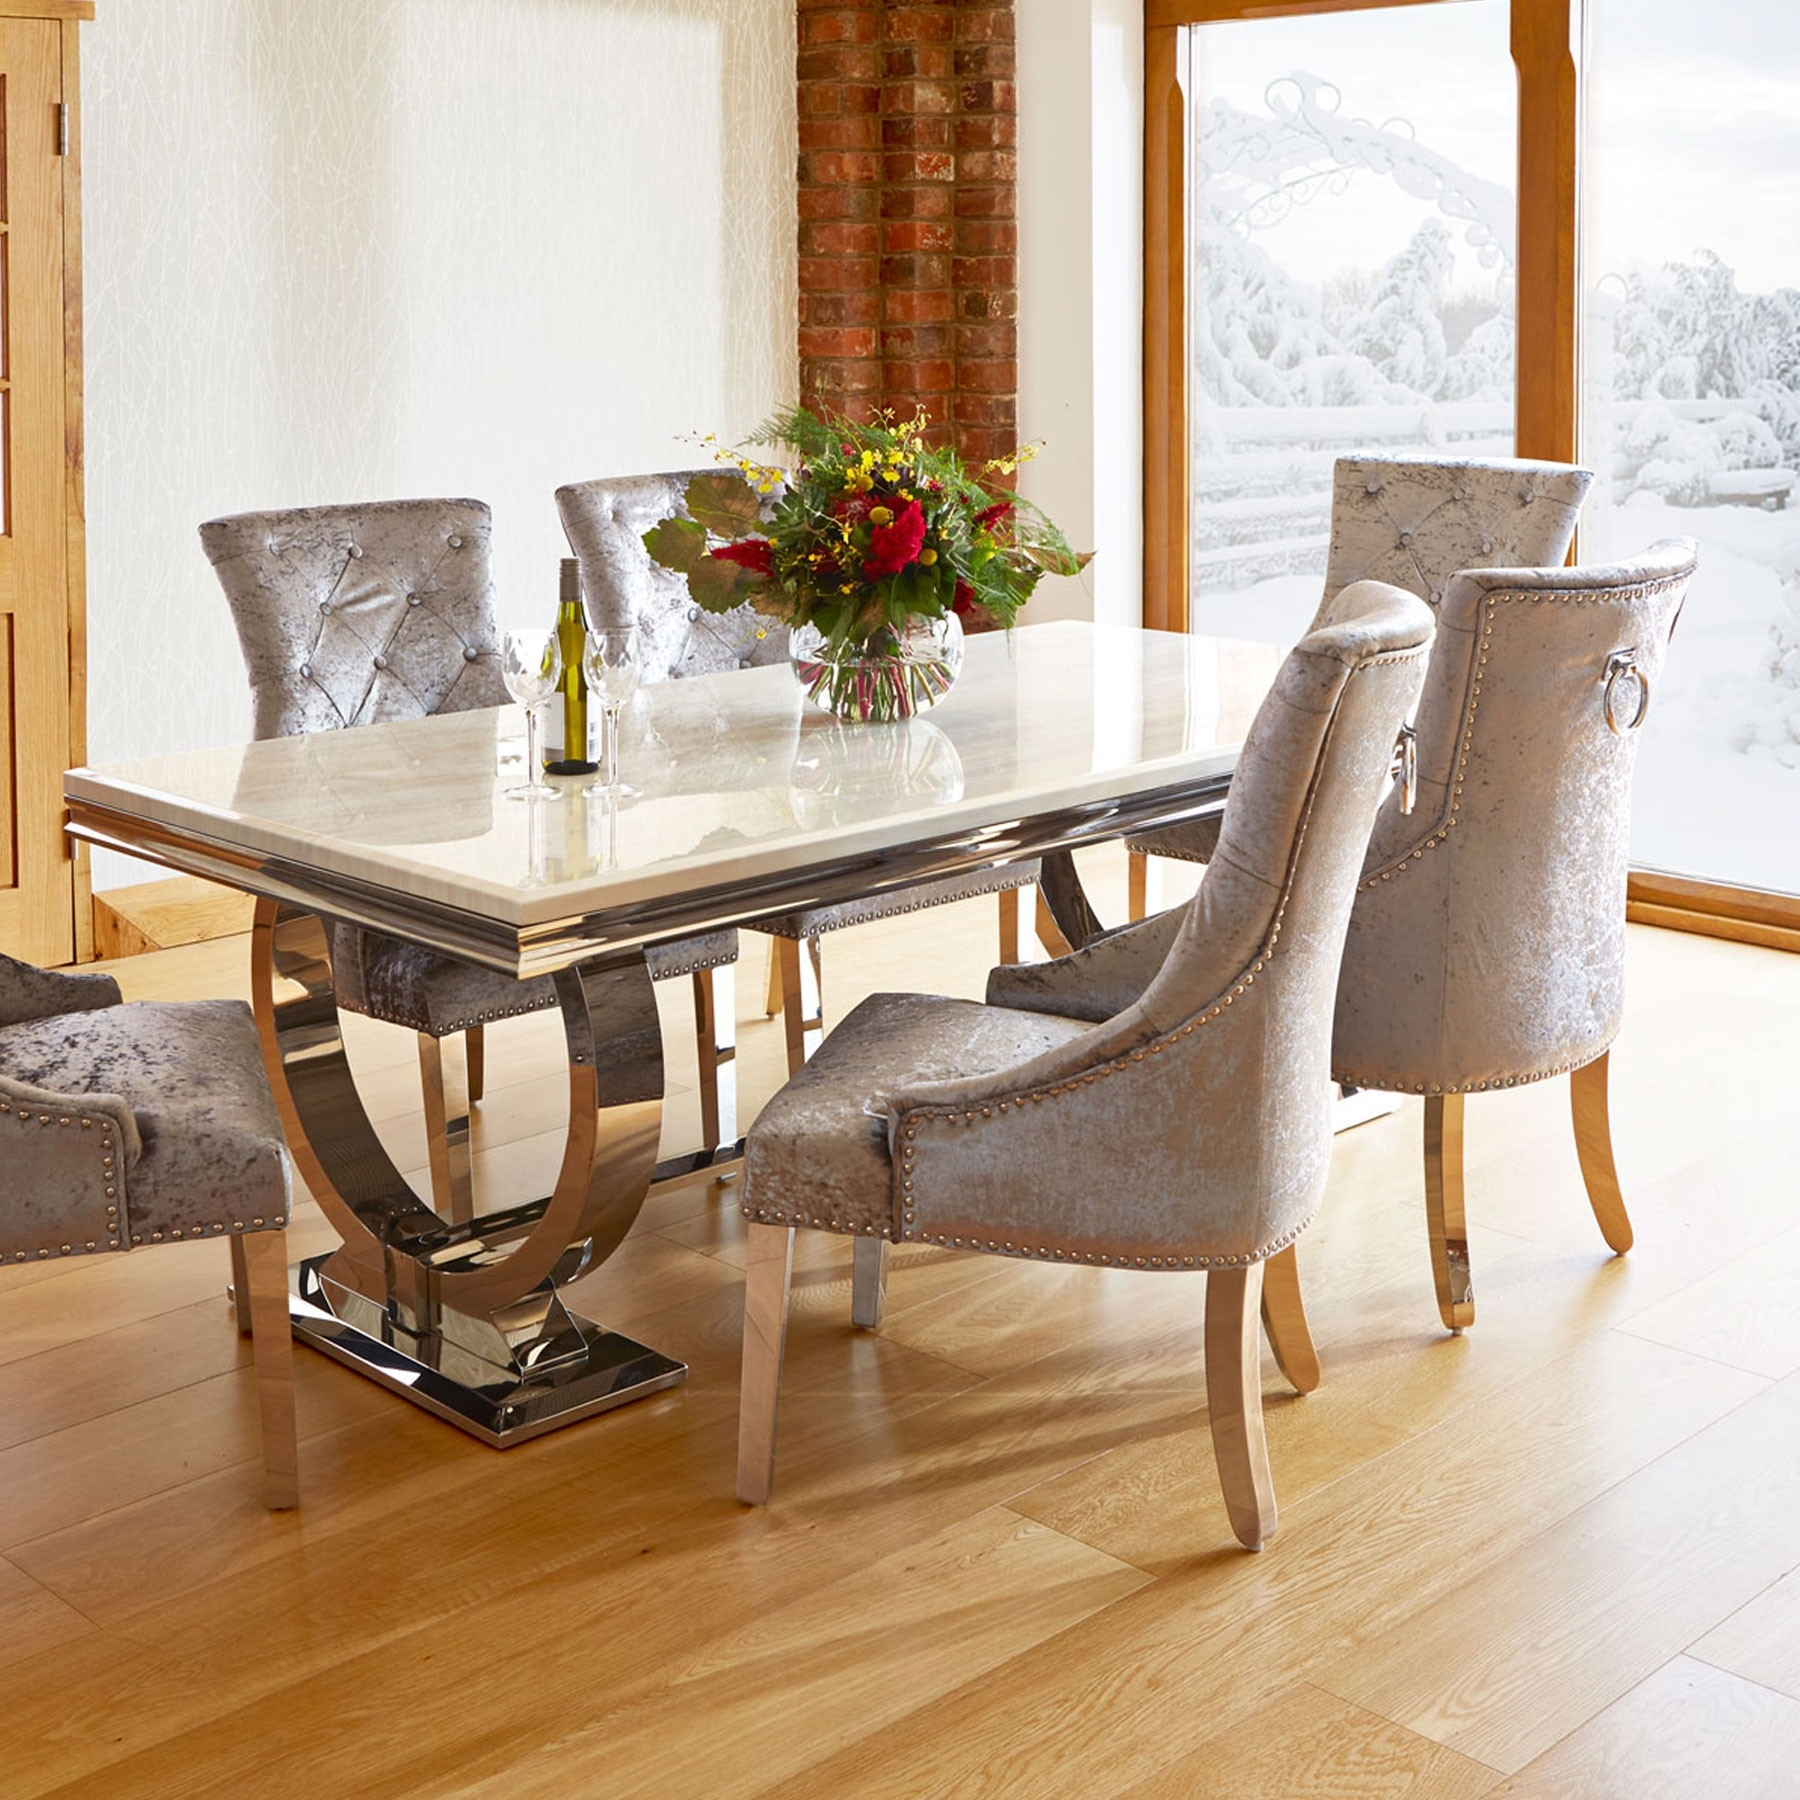 Dining Tables And Chairs – All You Want To Know – Goodworksfurniture regarding Newest Dining Room Tables And Chairs